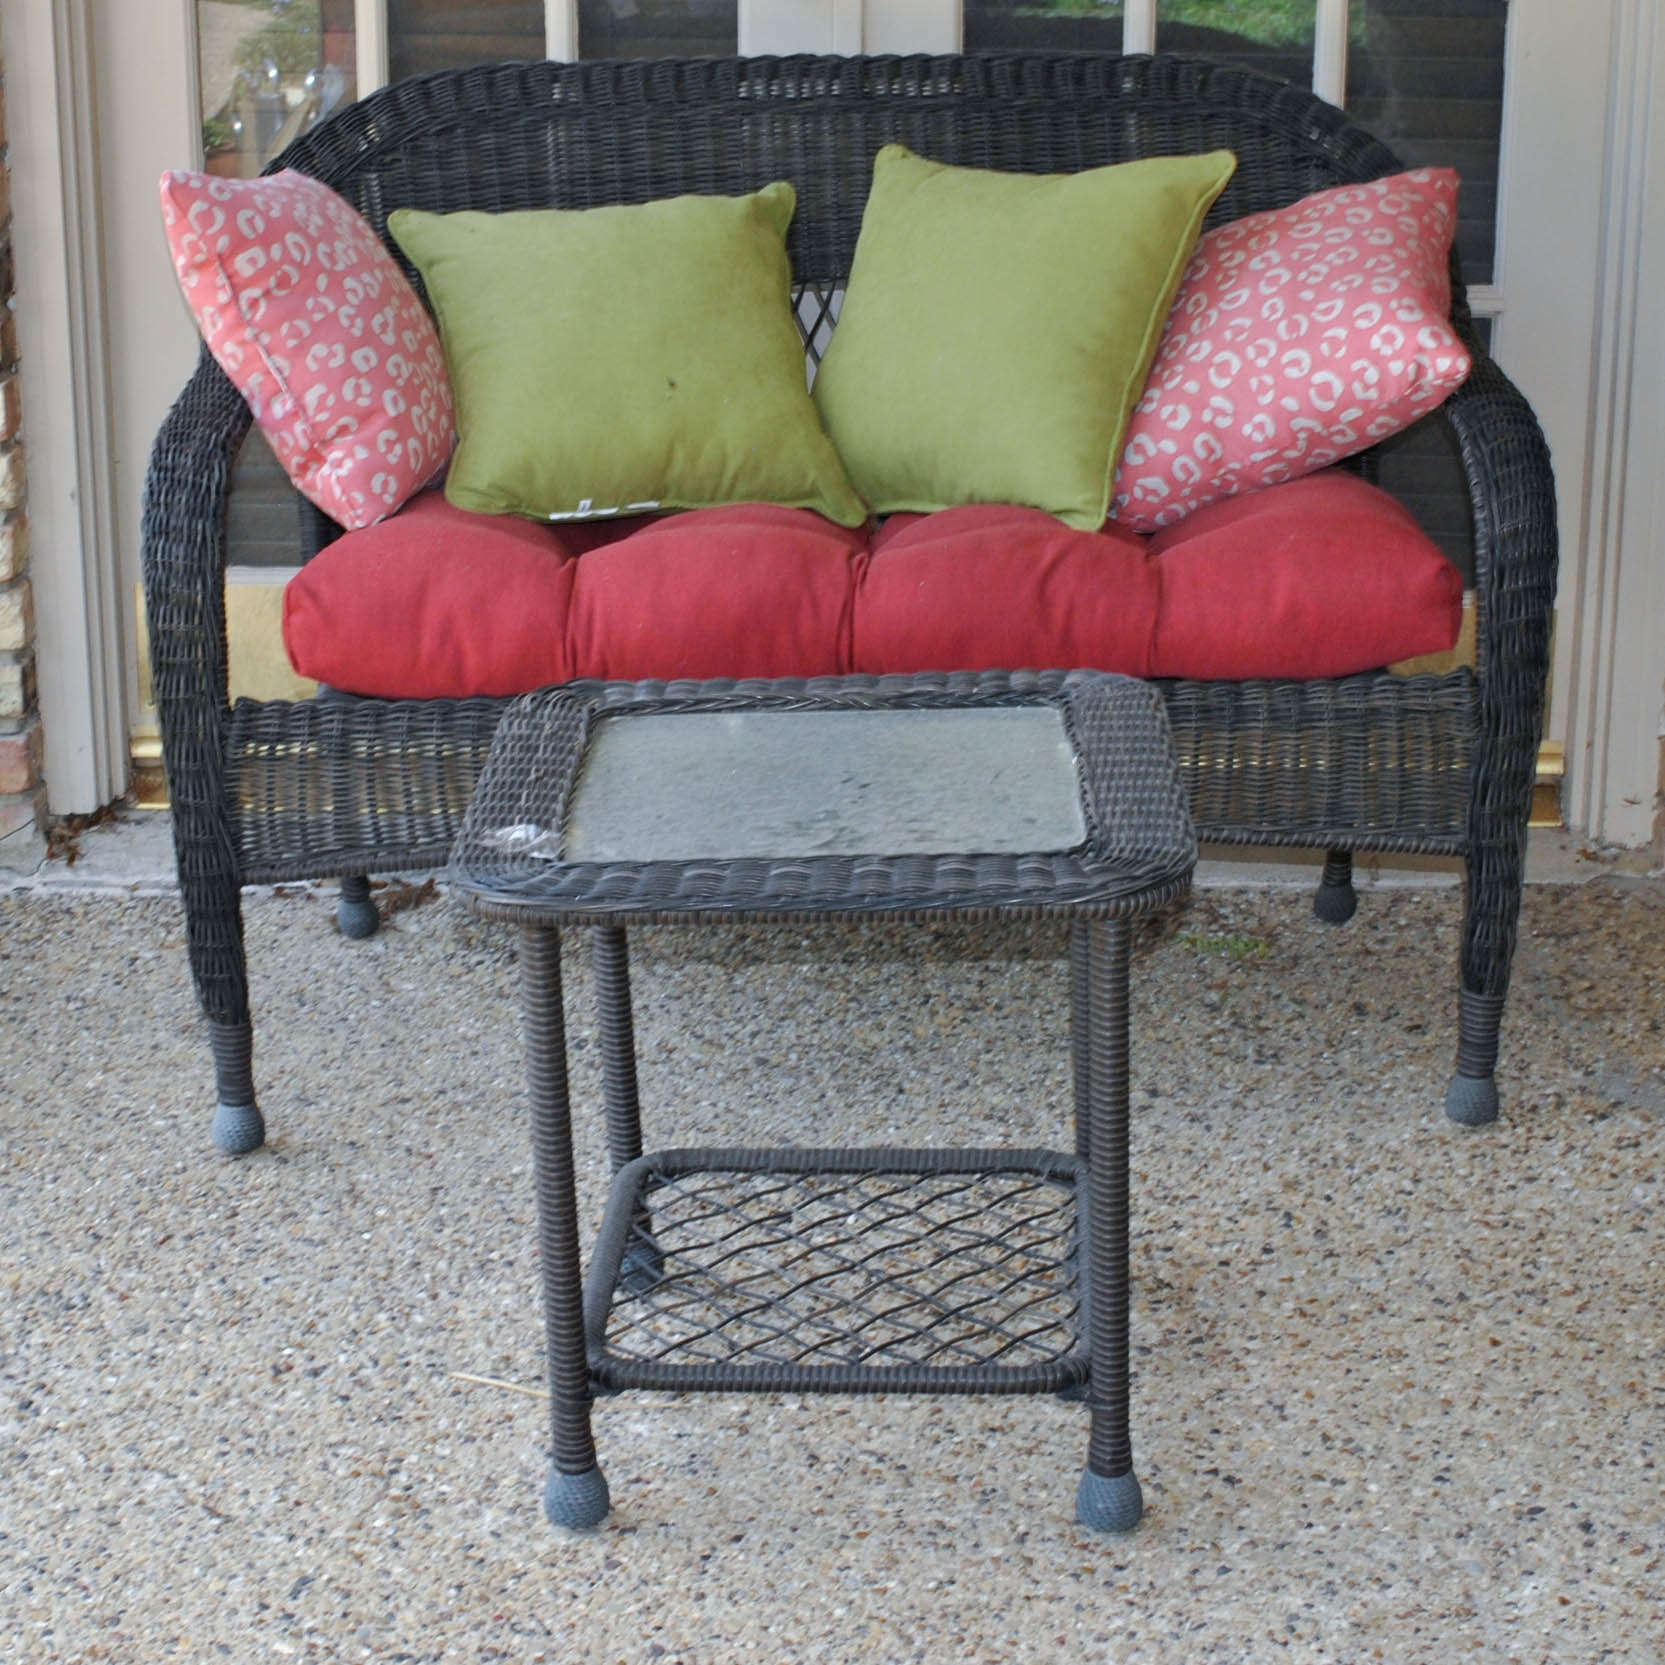 Outdoor Patio Bench and Accent Table